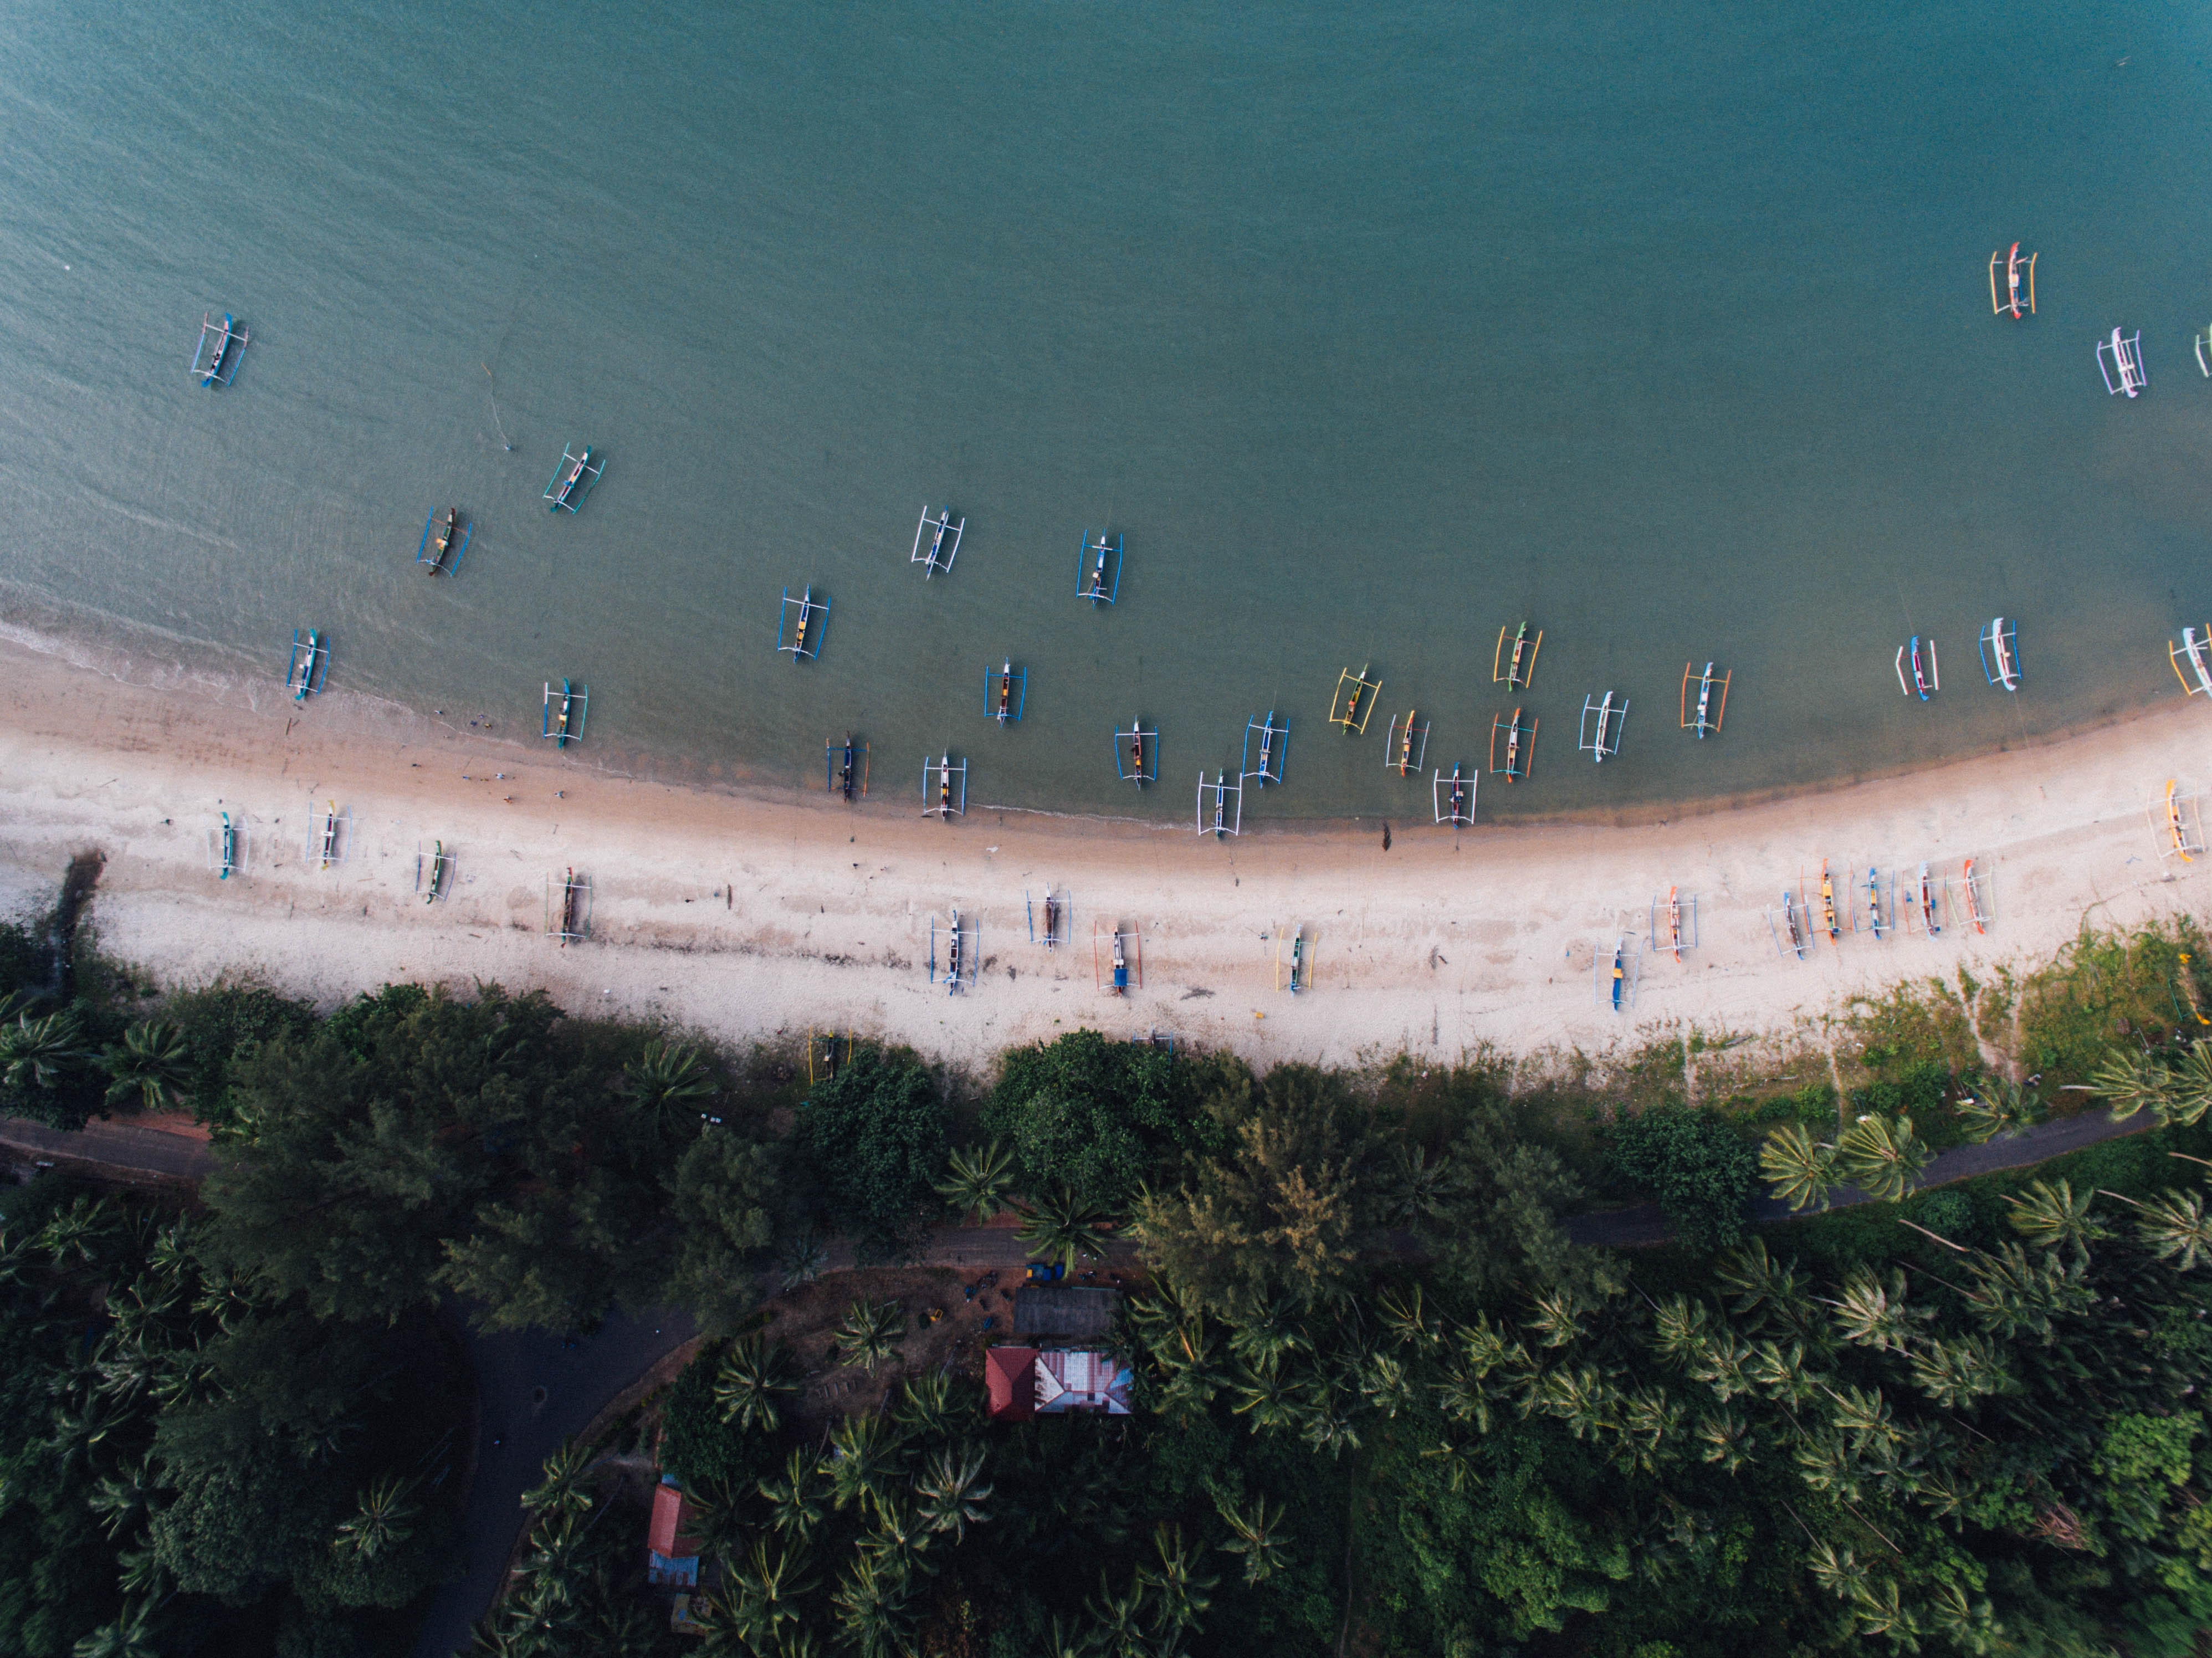 Drone view of traditional fishing catamaran boats in the shallow waters at Belitung